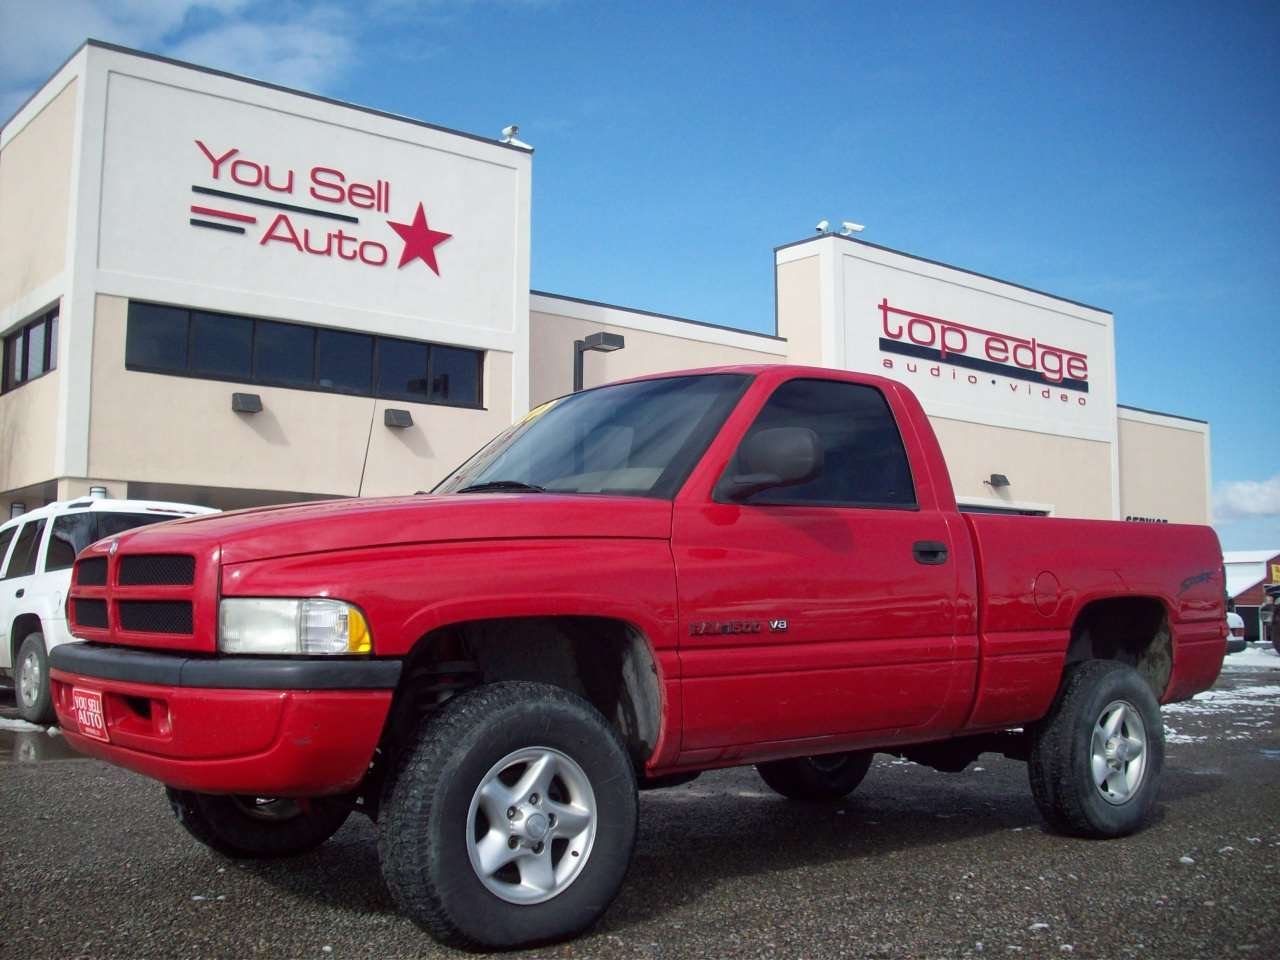 1998 dodge ram 1500 4x4 pickup sold you sell auto. Black Bedroom Furniture Sets. Home Design Ideas